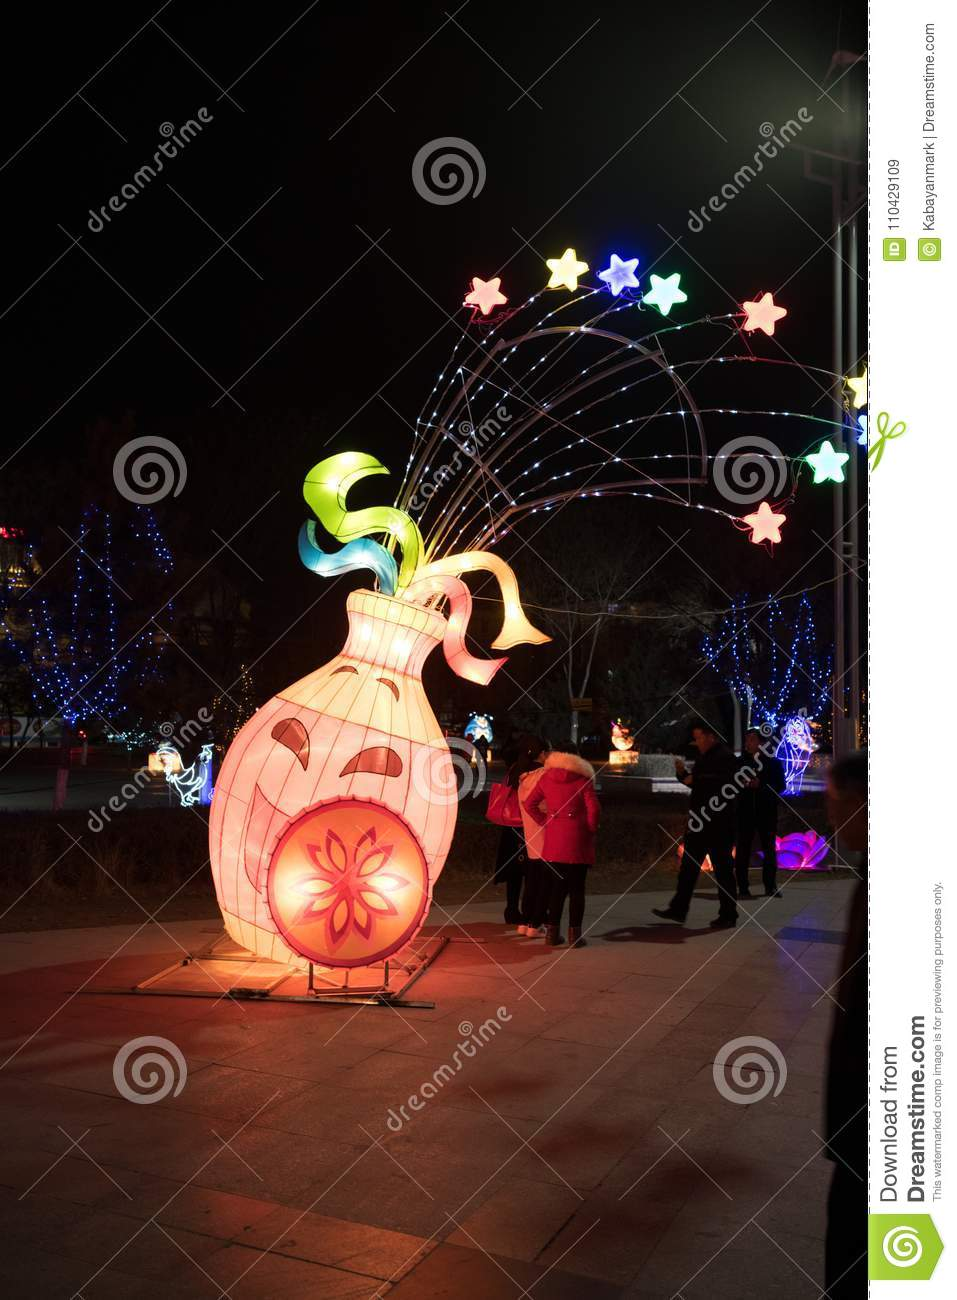 Altai Park Chinese Lantern Festival For Lunar New Year Hohhot Night Editorial Stock Image Image Of Enjoy Chinese 110429109